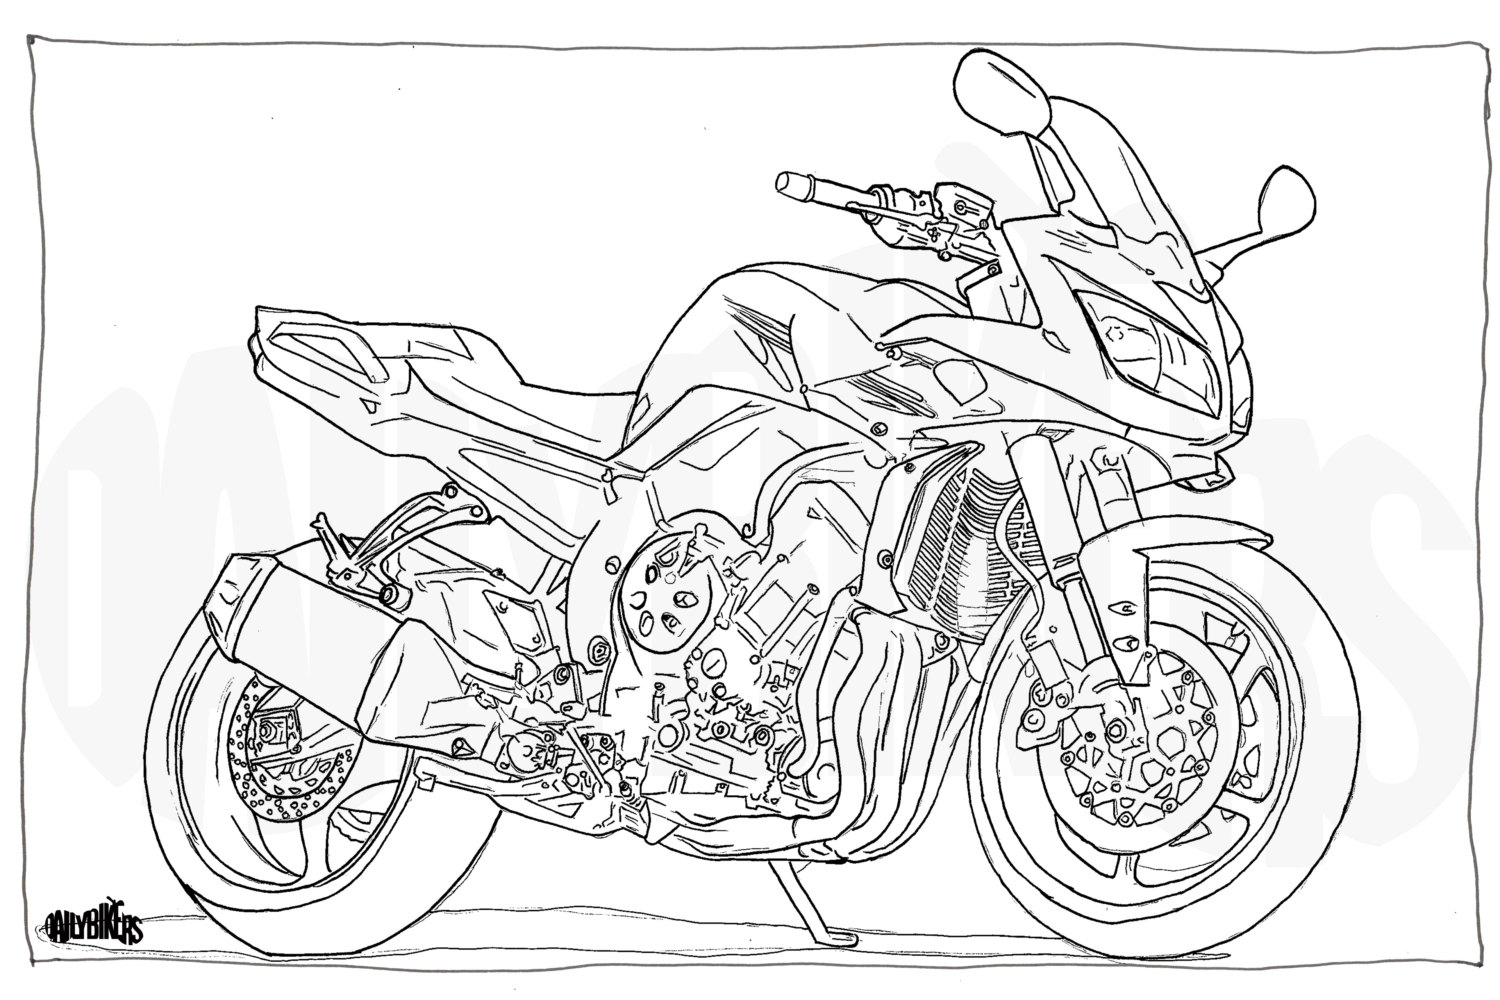 Coloration Adulte Page Moto Illustration Coloriage Moto encequiconcerne Coloriage Moto